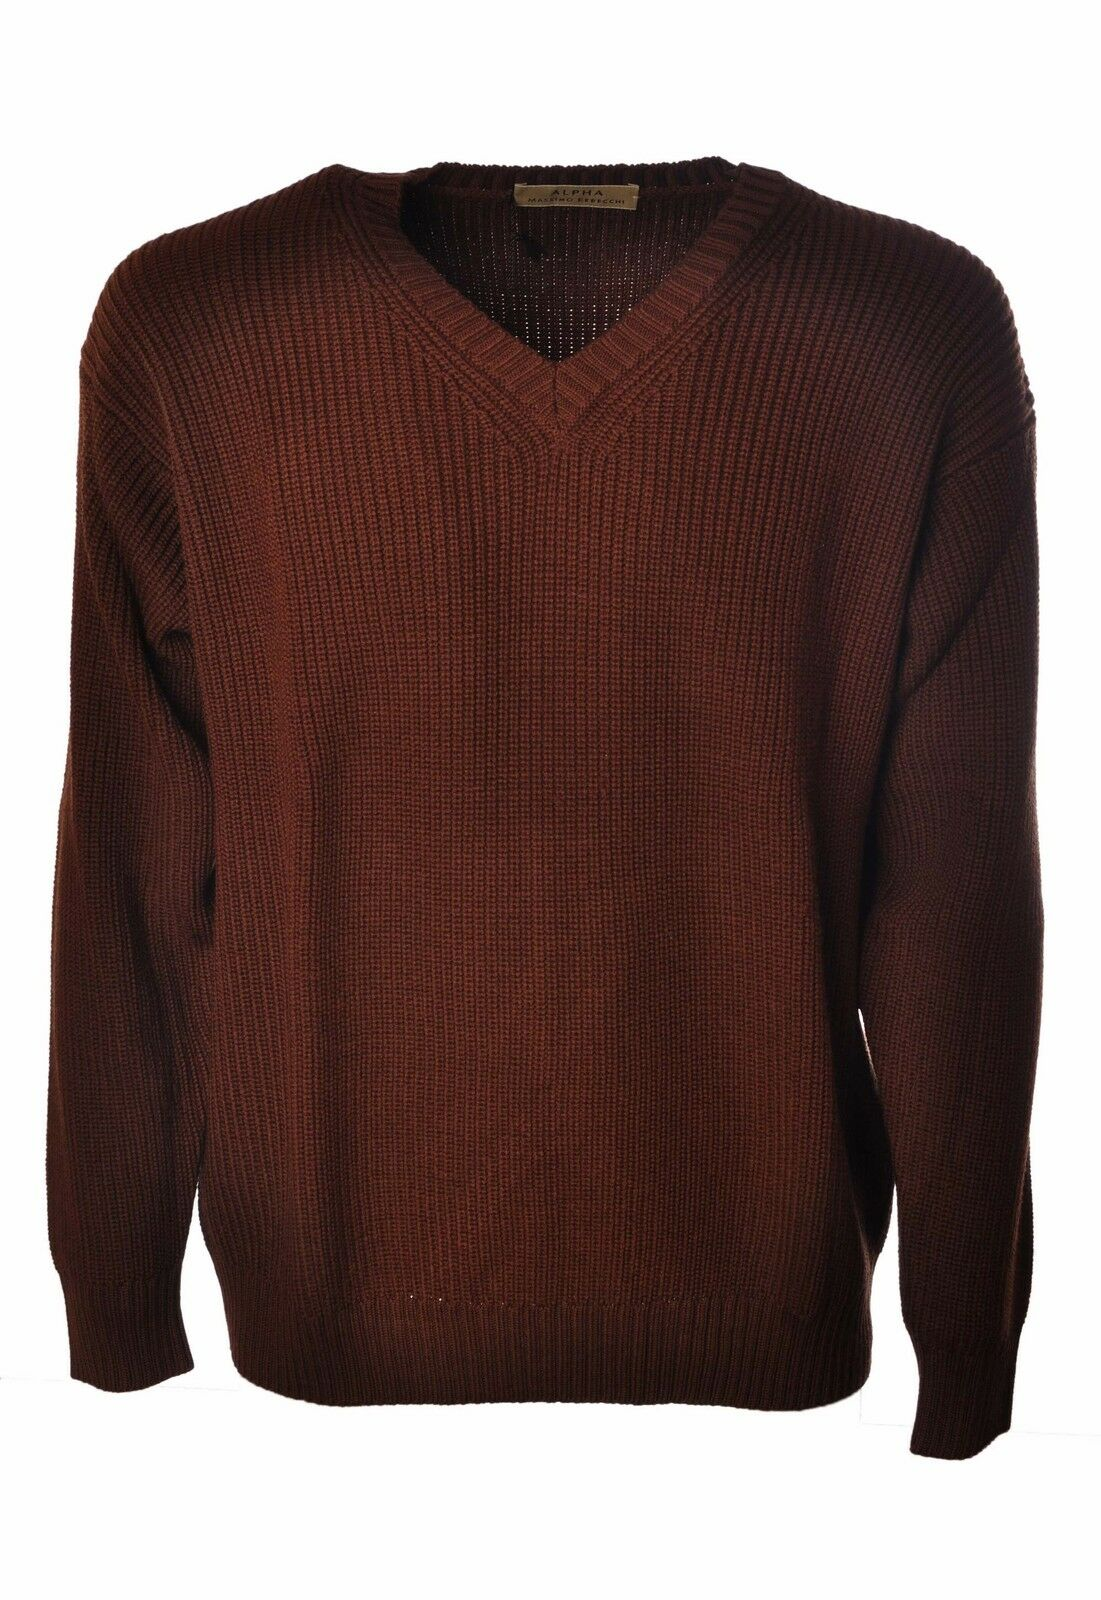 Alpha  -  Sweaters - Male - Brown - 3766128A183821